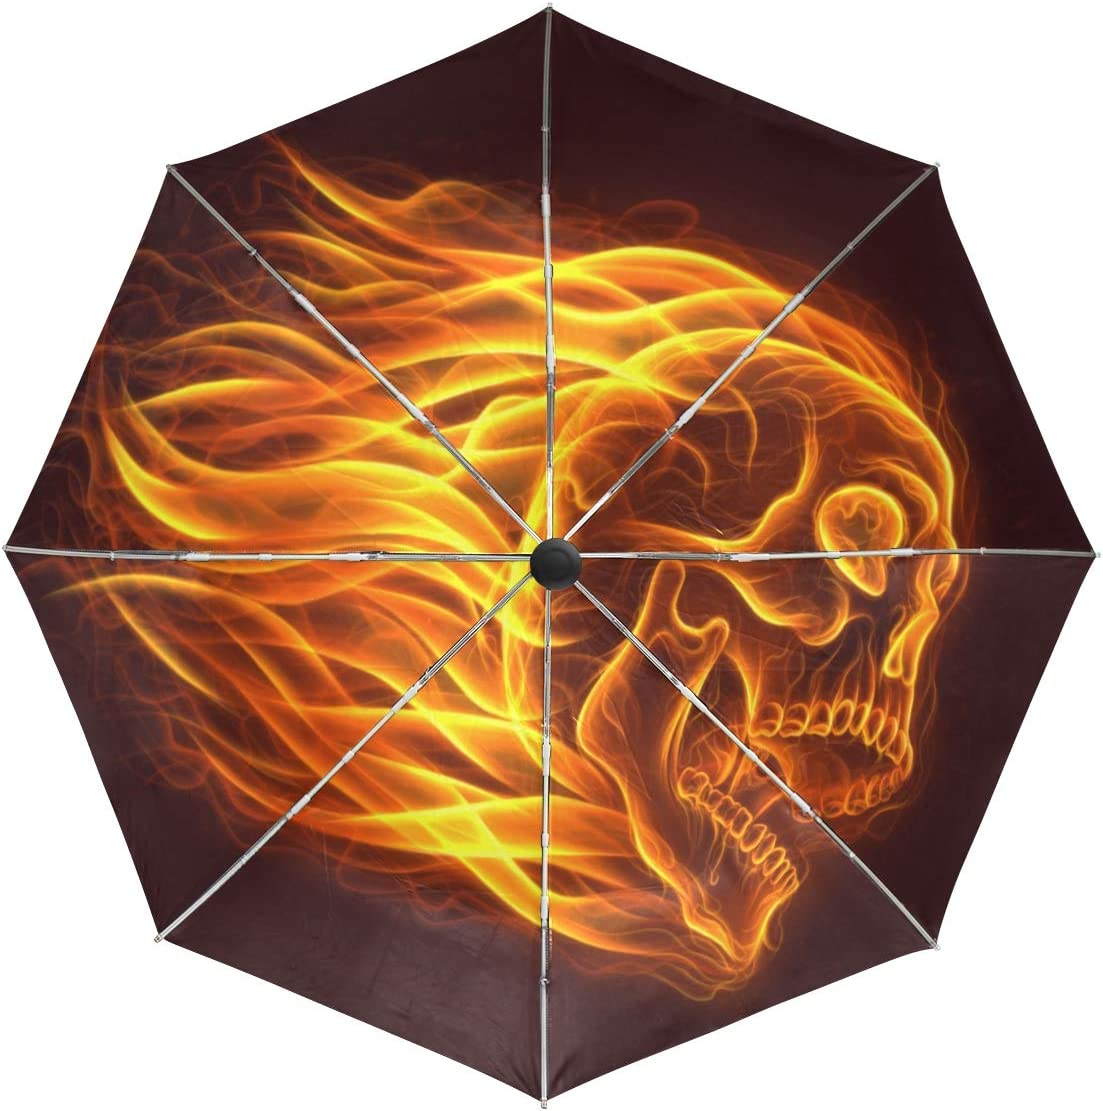 Max 81% OFF Wamika Fire Skull Head Automatic Bombing new work Day Compact Windproof Umbrella